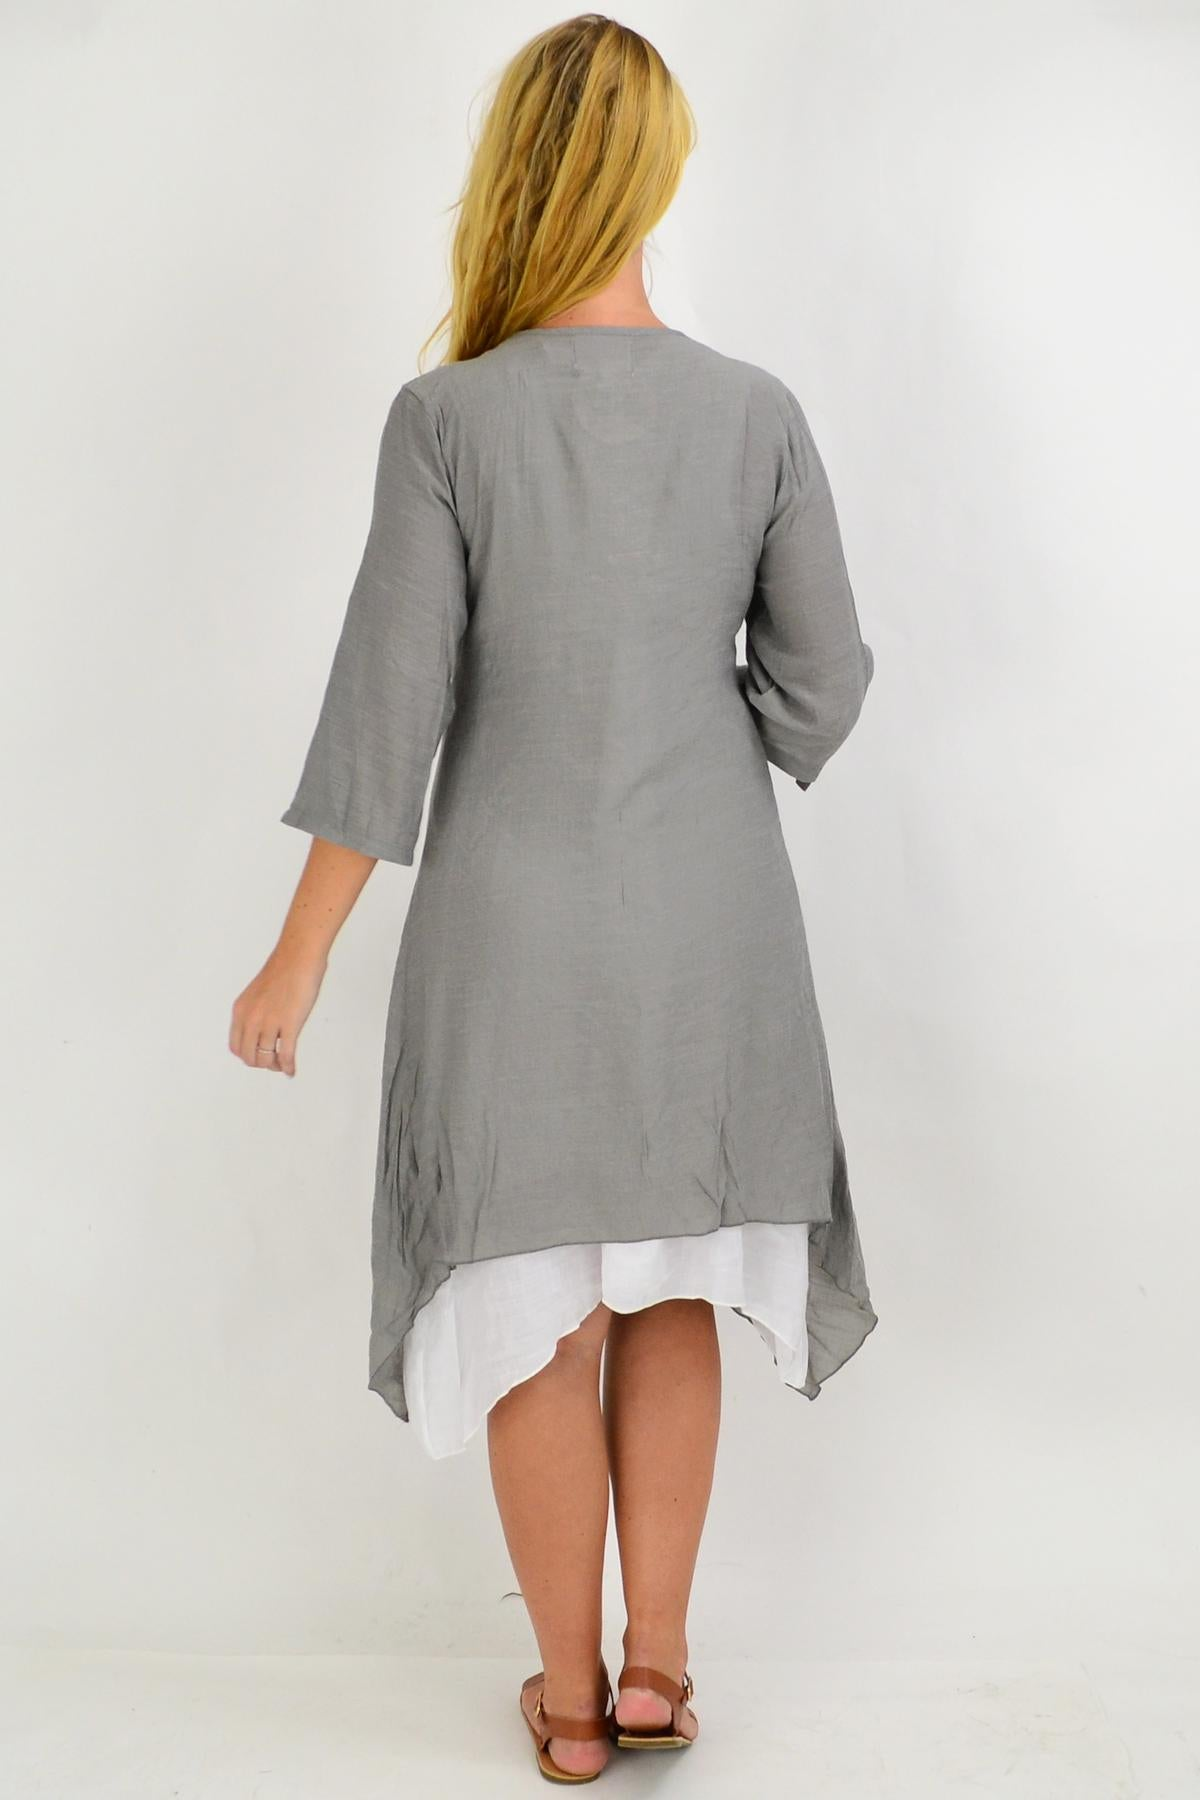 Grey Quarter Sleeve Easy Wear Summer Cardi | I Love Tunics | Tunic Tops | Tunic | Tunic Dresses  | womens clothing online